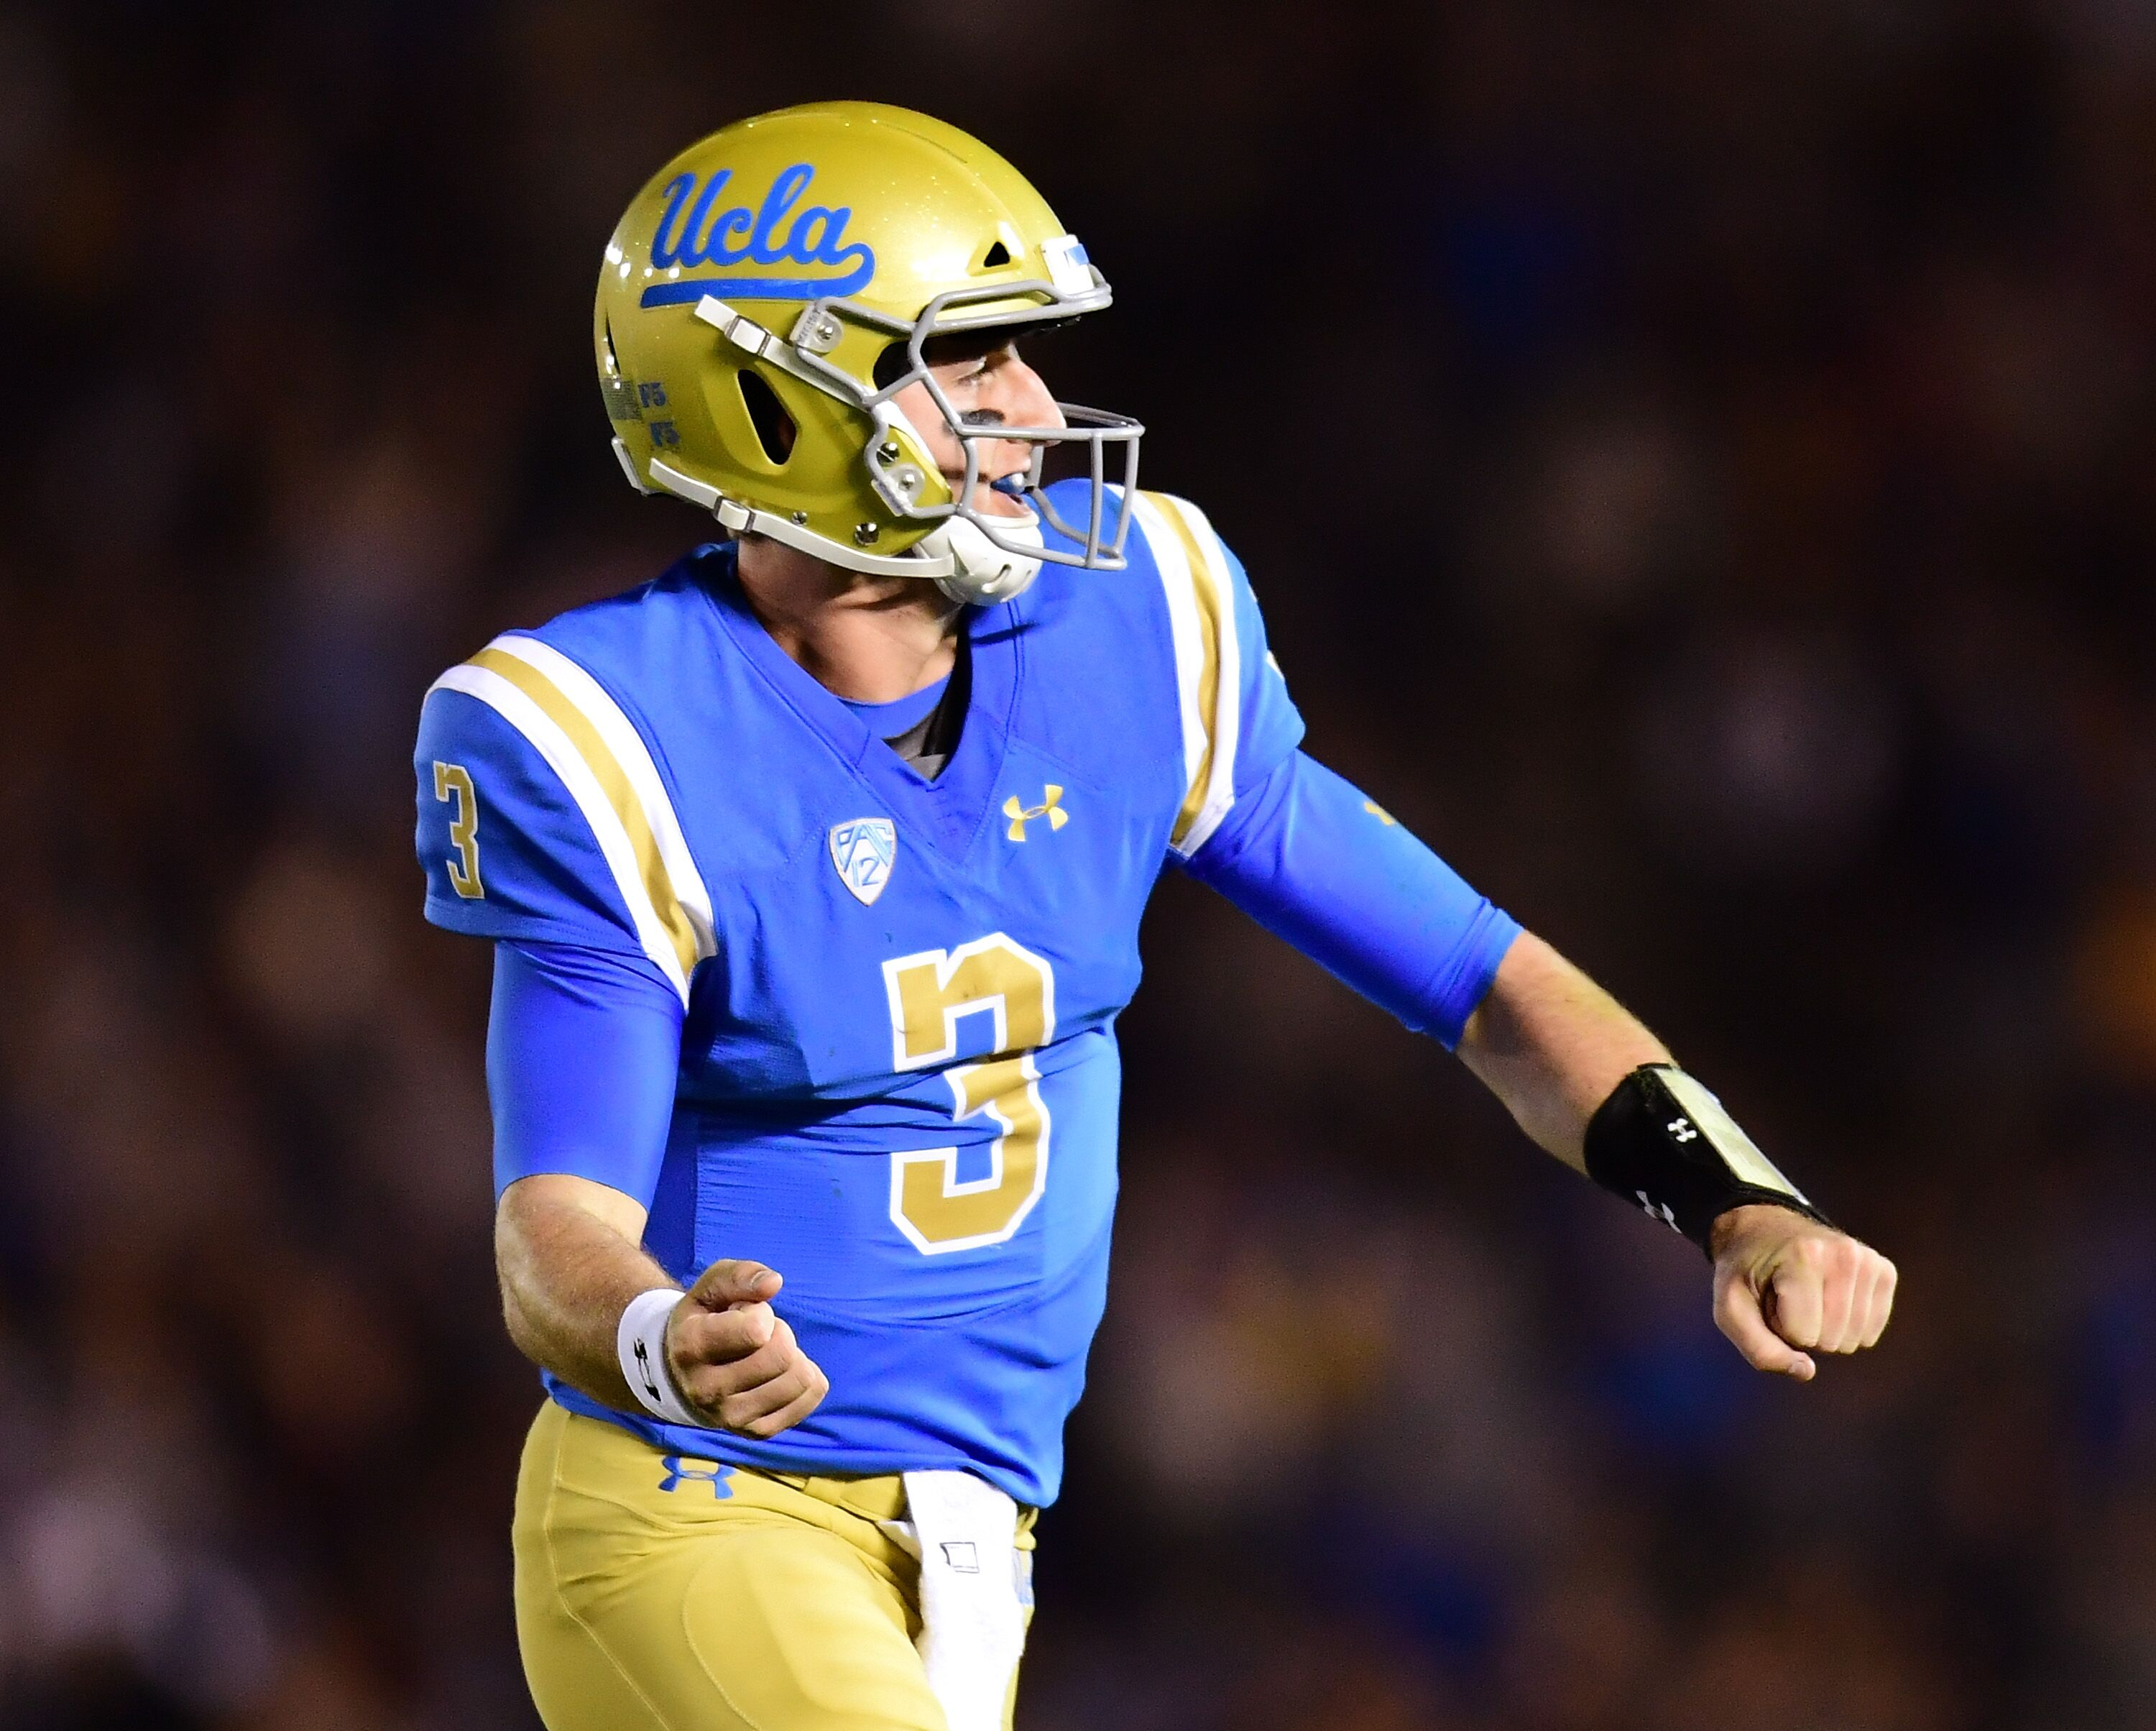 878771616-california-v-ucla.jpg